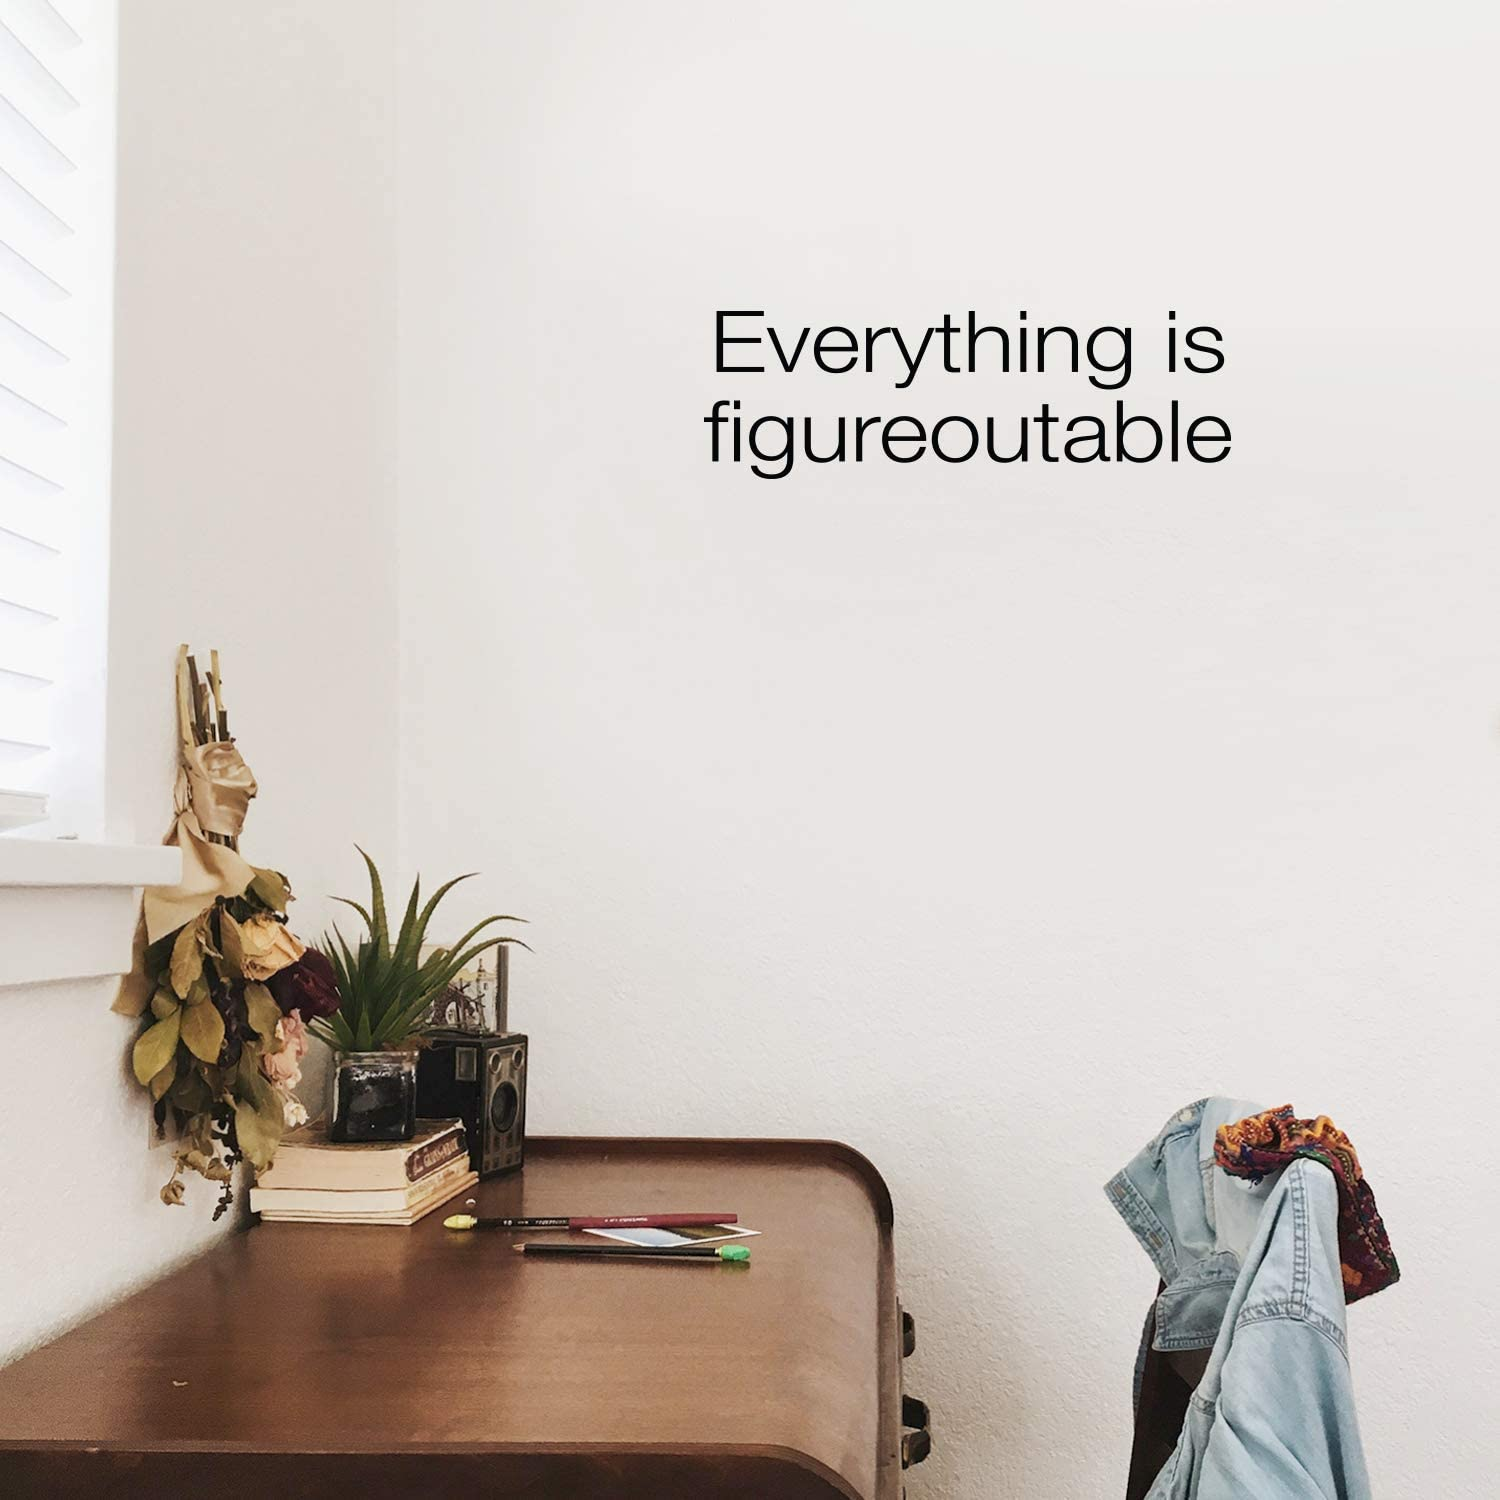 """Vinyl Wall Art Decal - Everything is Figureoutable - 7"""" x 22"""" - Modern Inspirational Life Quote for Home Bedroom Living Room Kitchen Office Workplace Classroom School Decor (Black)"""